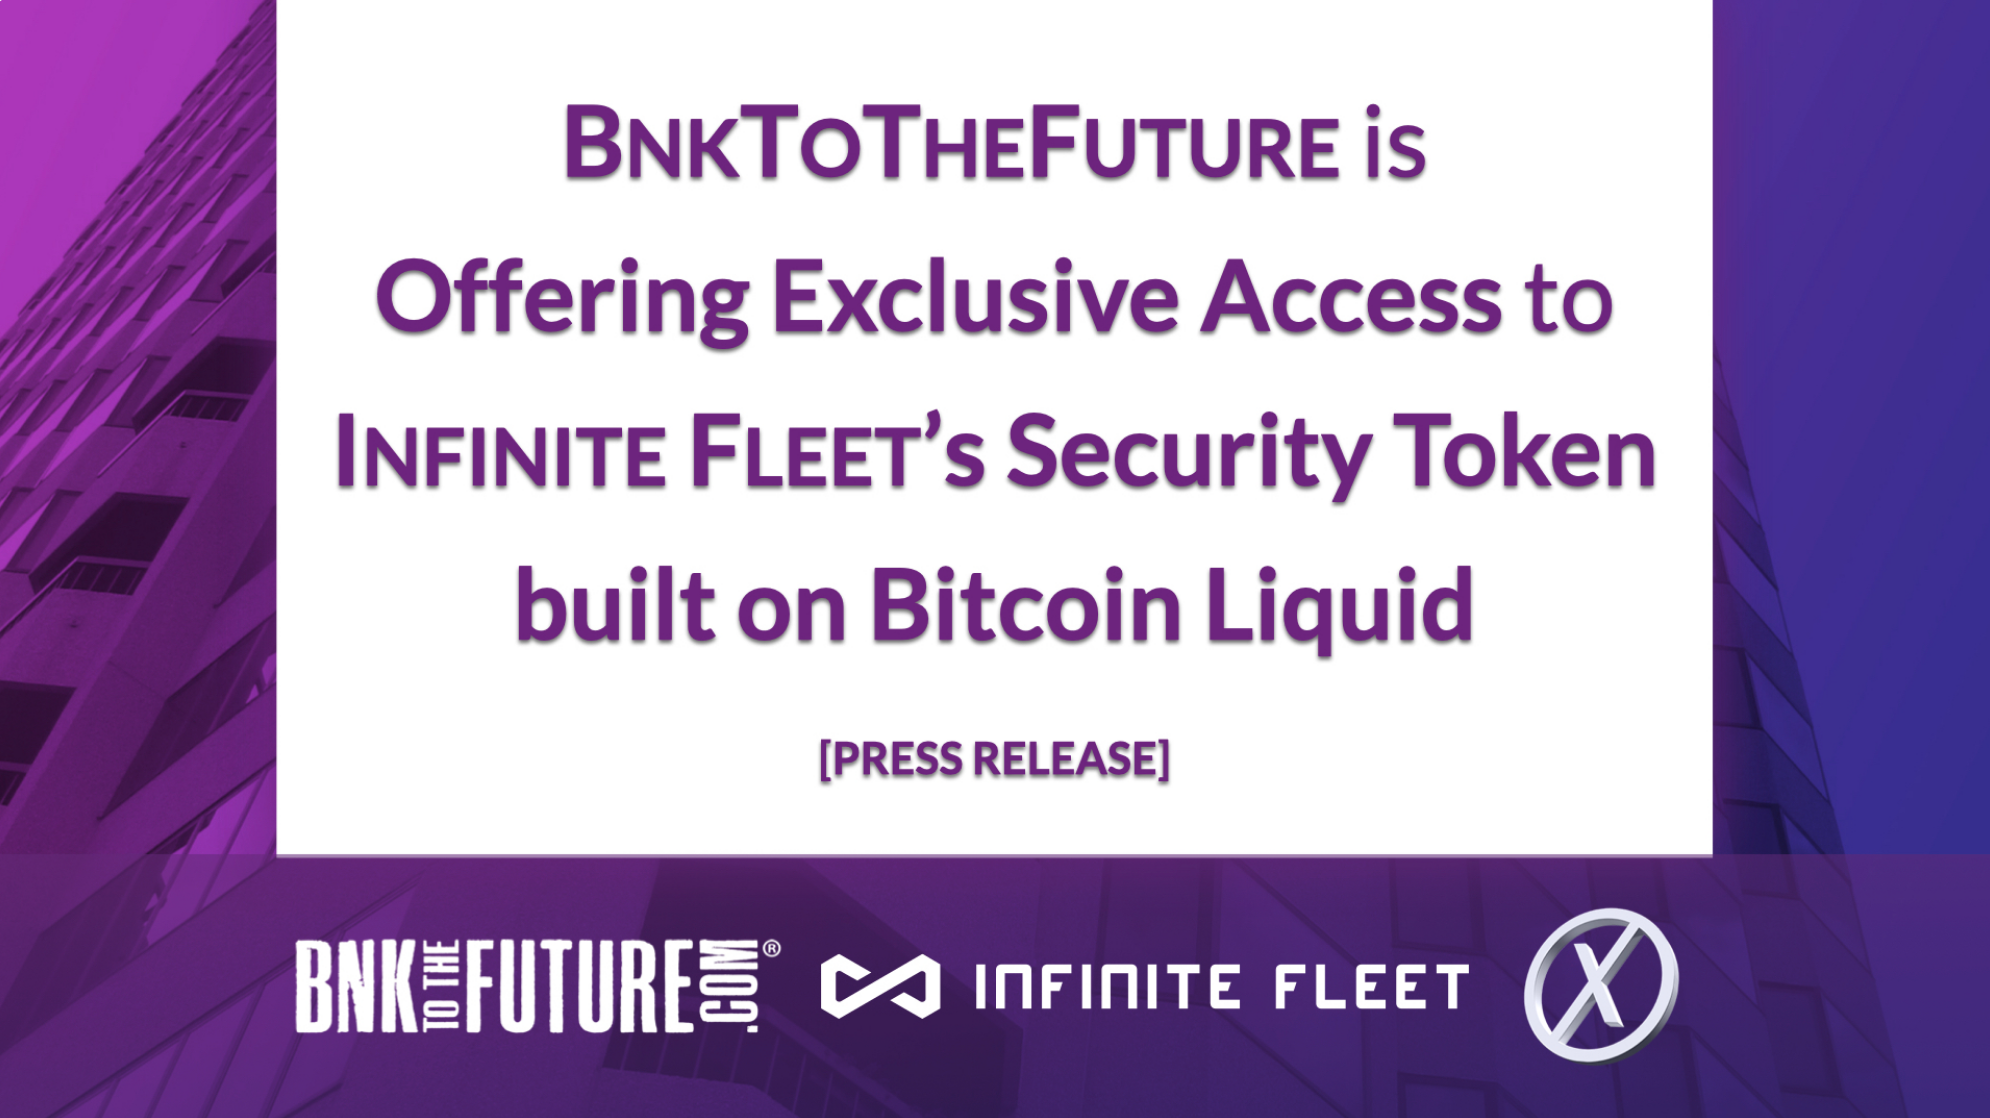 "BnkToTheFuture: Max Keiser, Charlie Lee, Samson Mow & Simon Dixon Discuss ""Infinite Fleet""Gaming Token And Project"